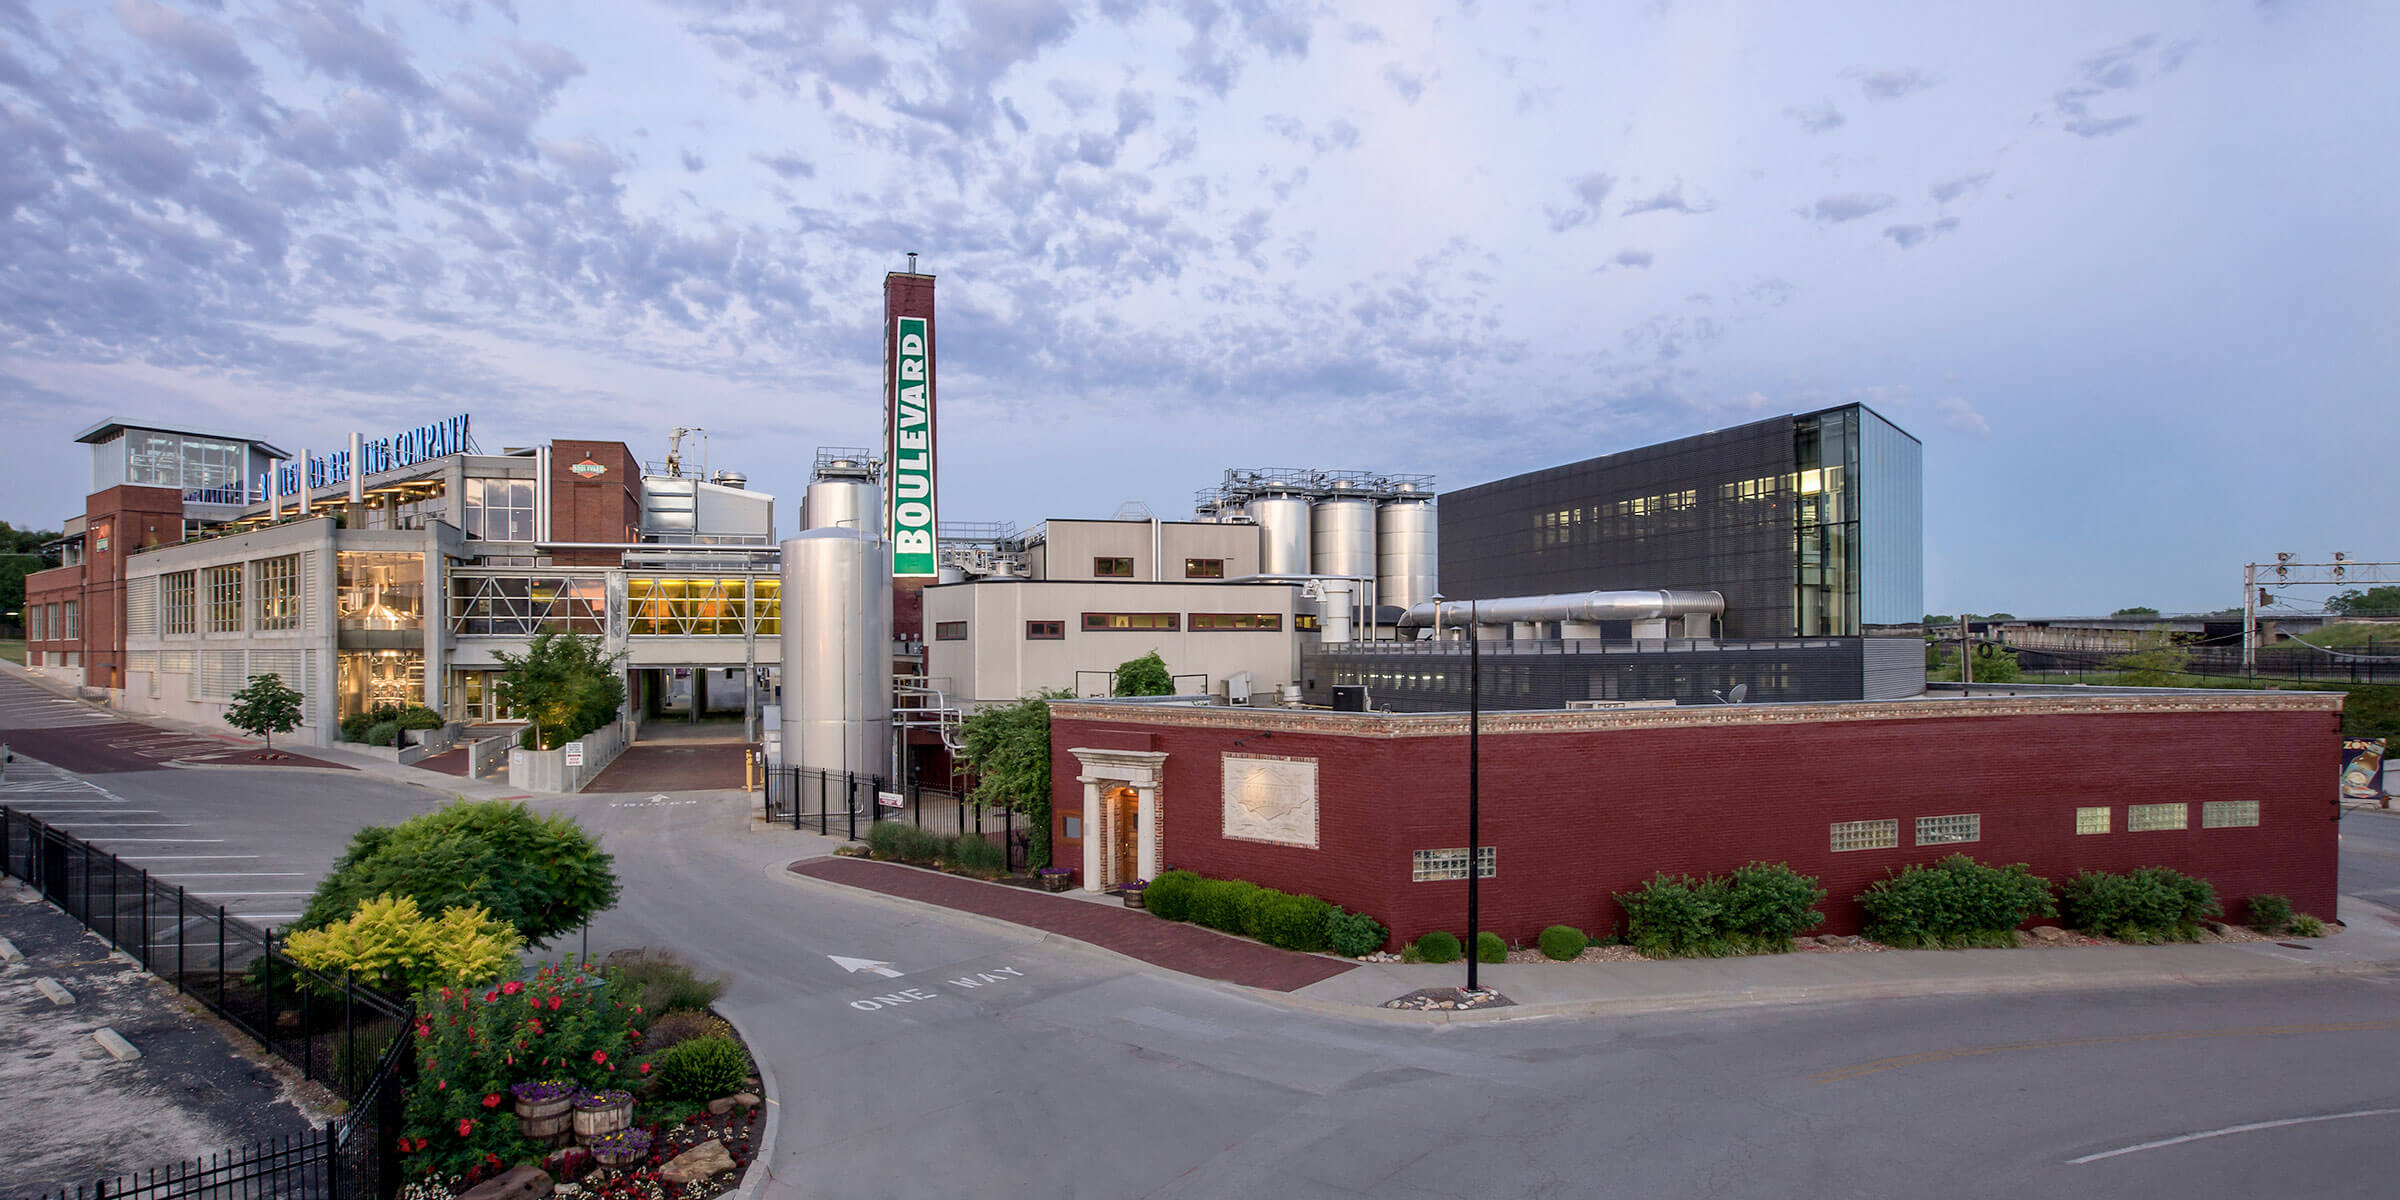 The production facility at Boulevard Brewing Co. in Kansas City, Missouri